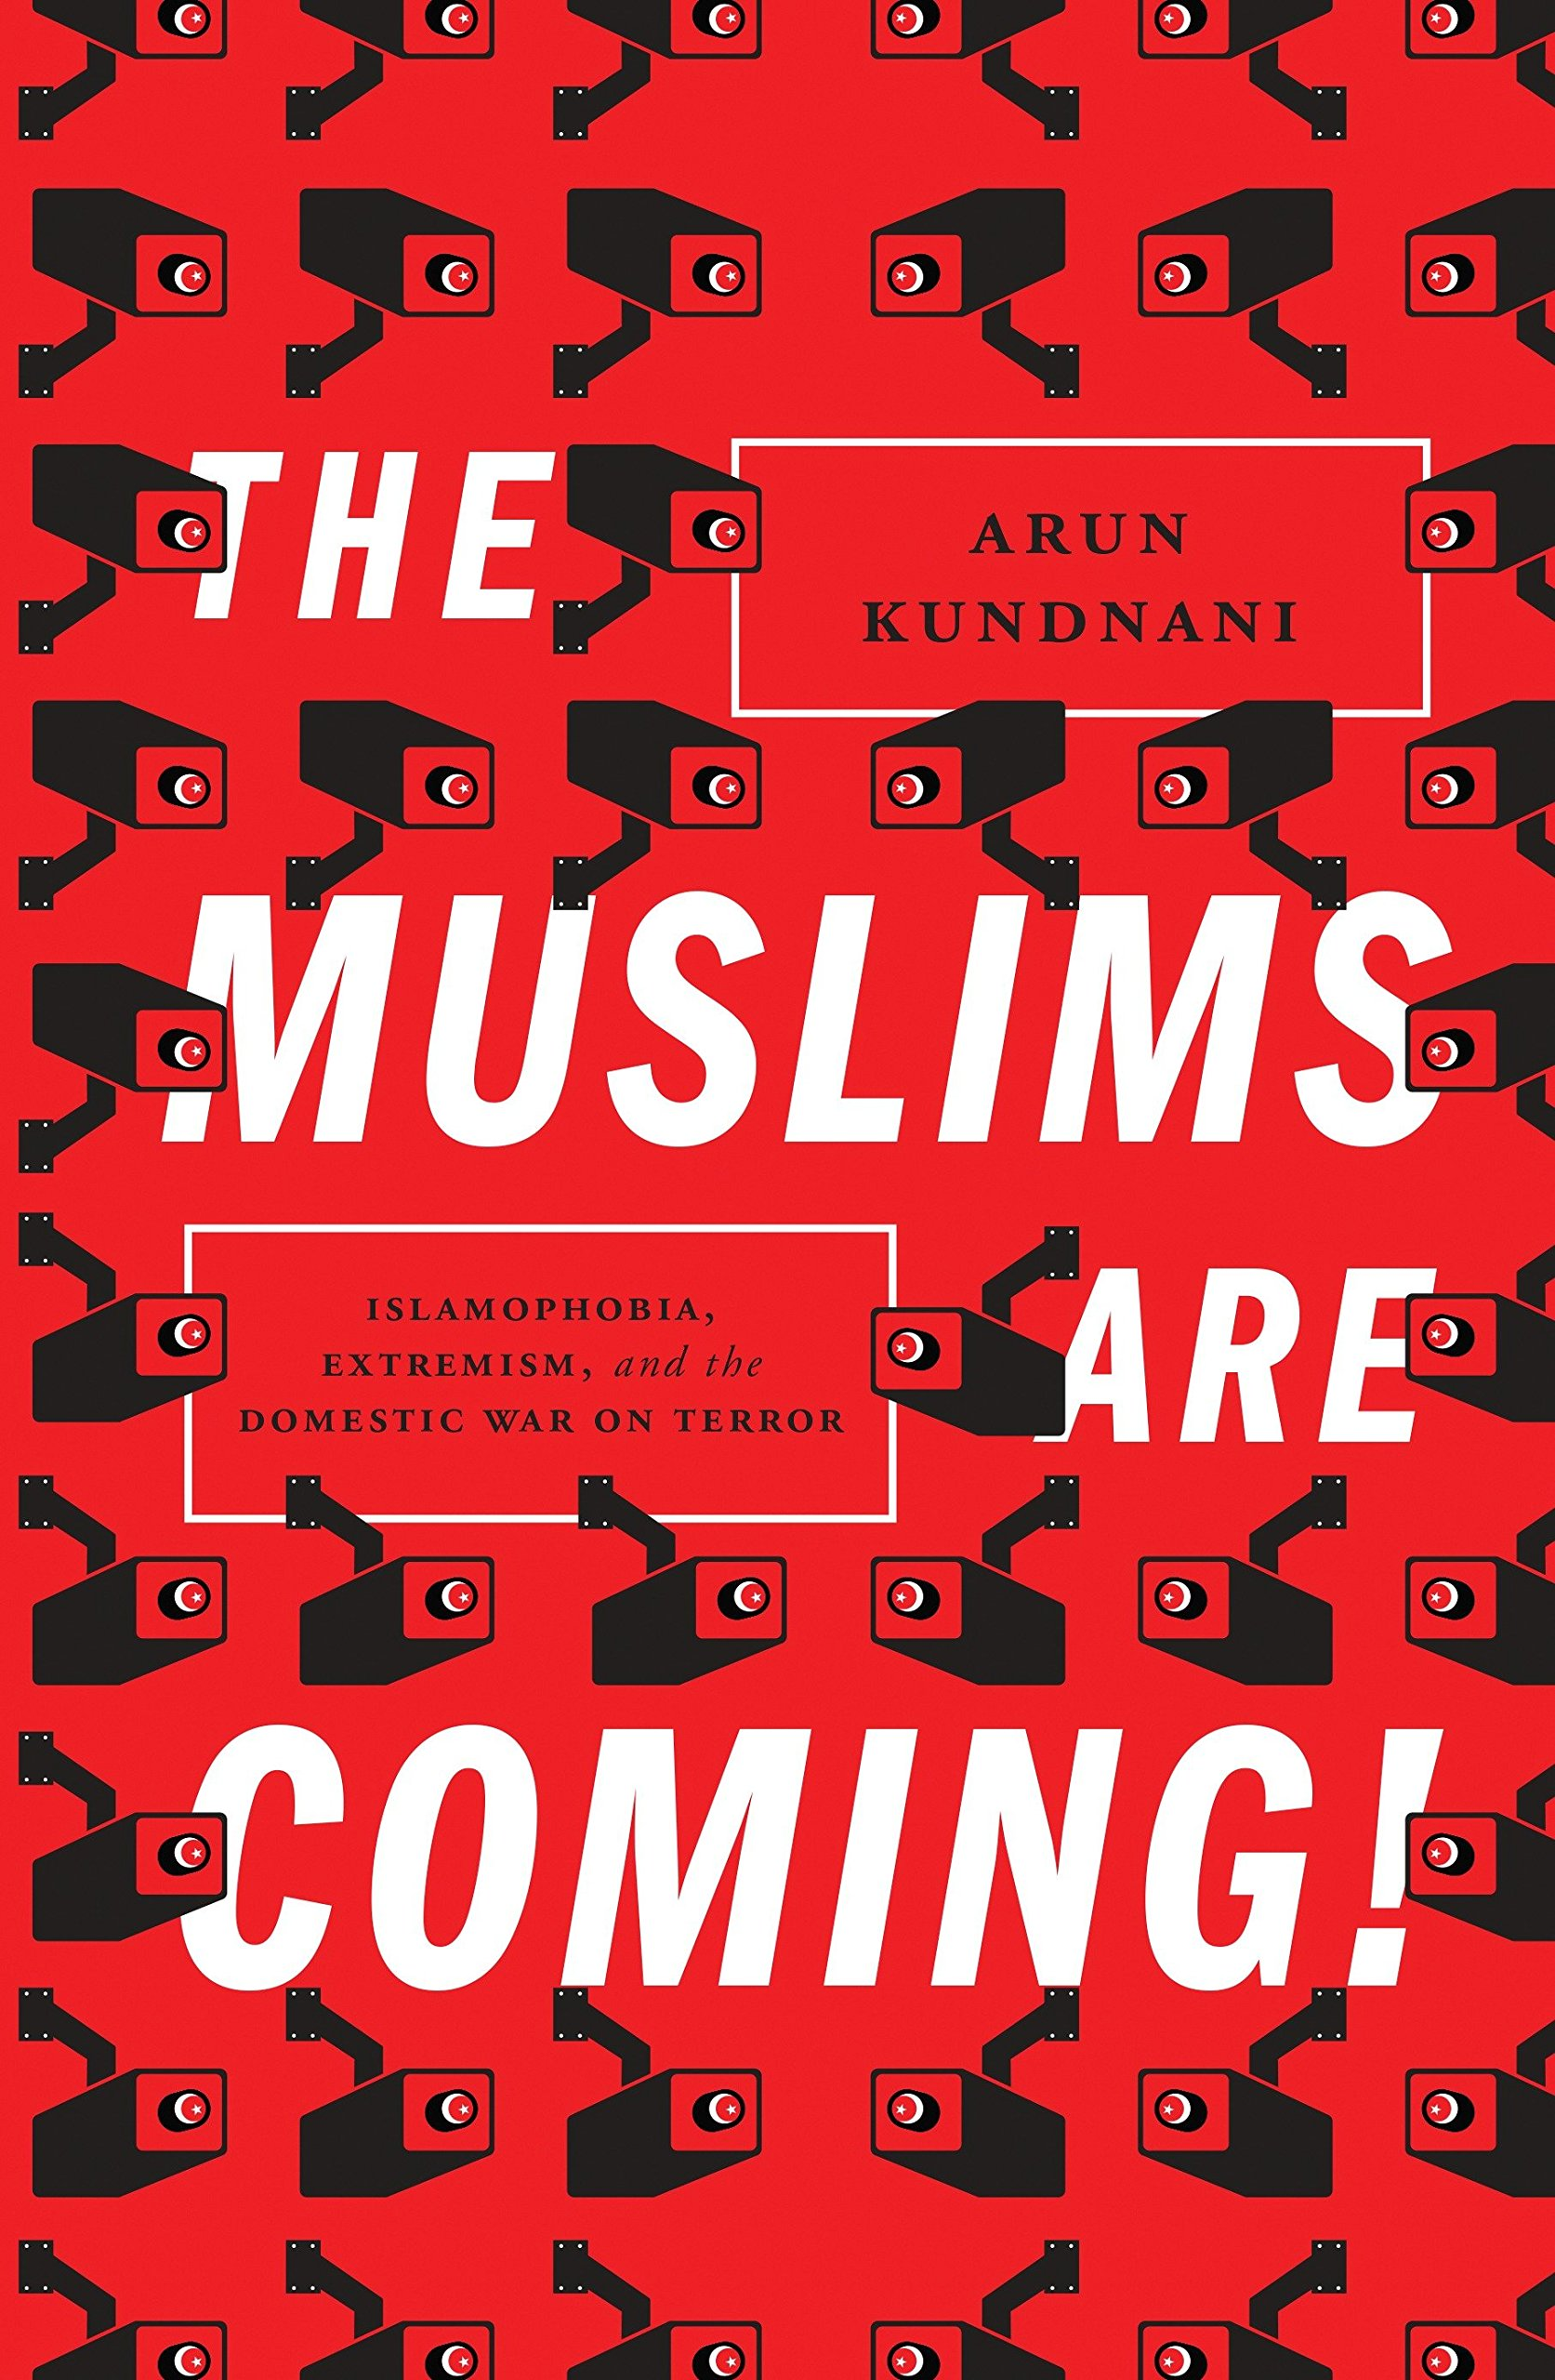 The Muslims are Coming: Islamophobia, Extremism, and the Domestic War on  Terror: Amazon.co.uk: Kundnani, Arun: 9781781681596: Books